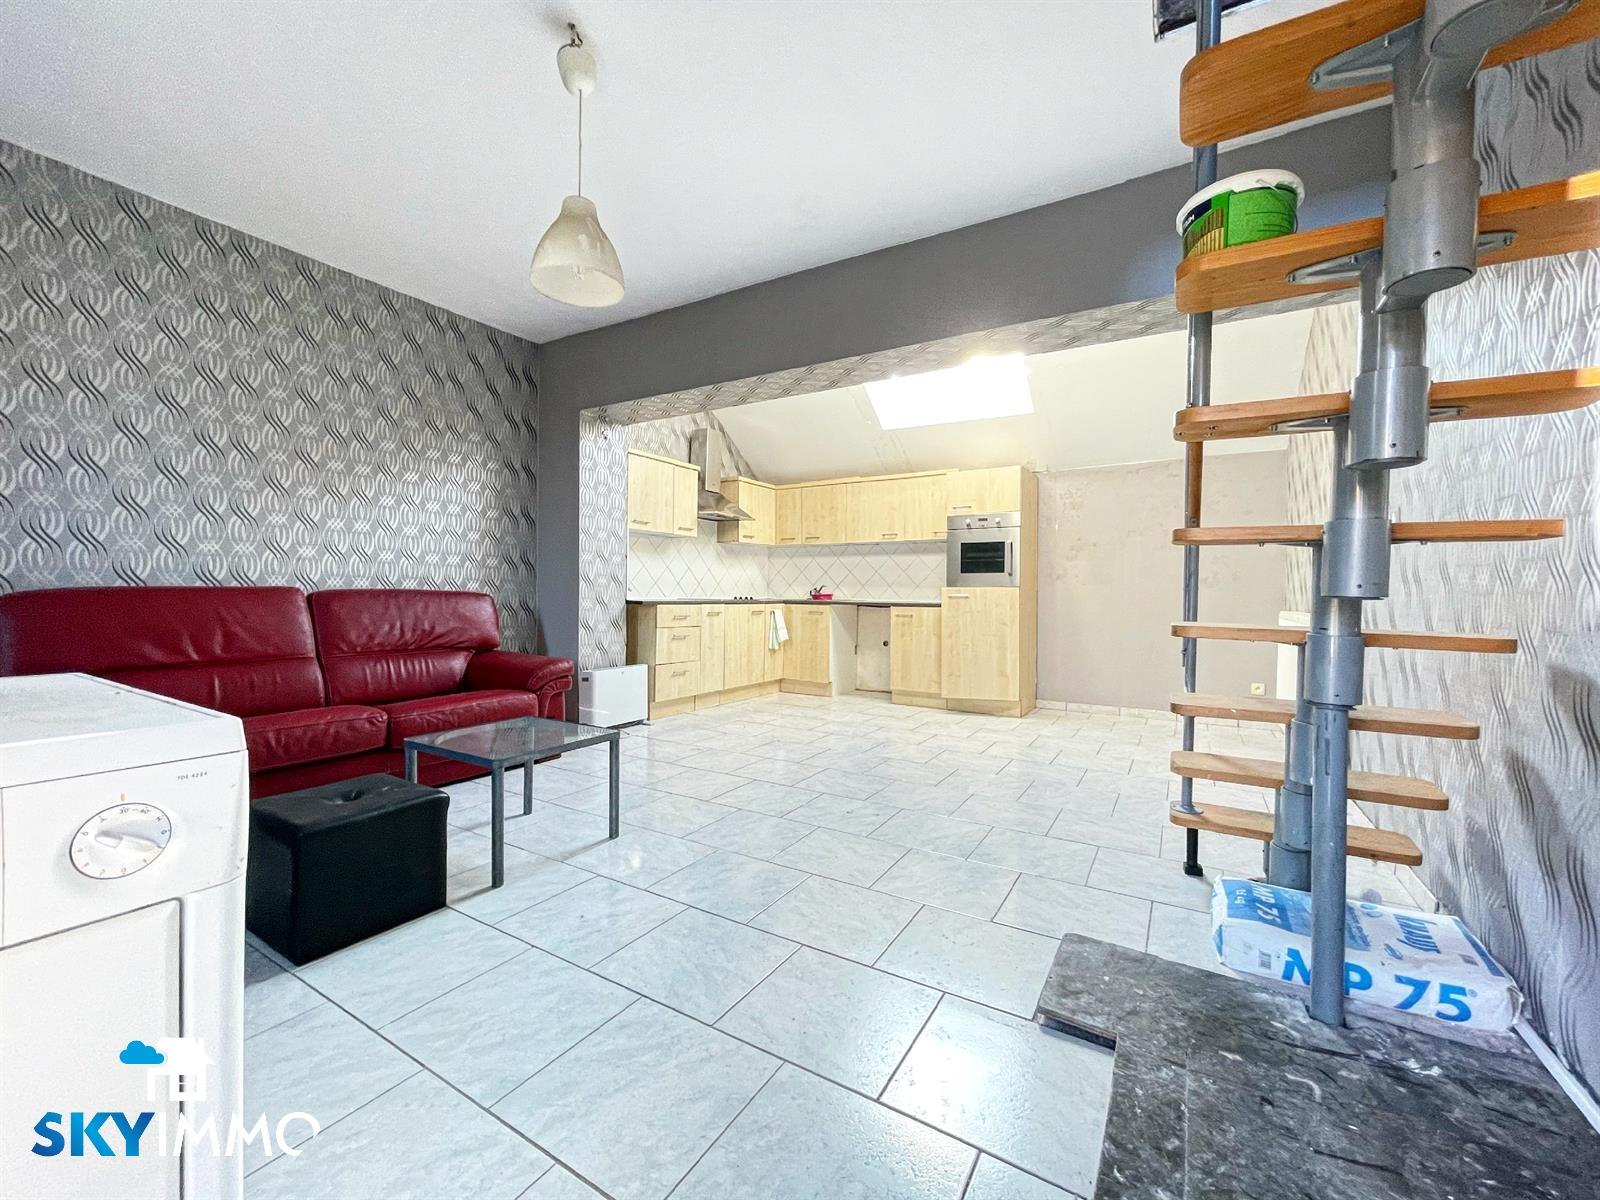 Huis - Flemalle - #4421147-2